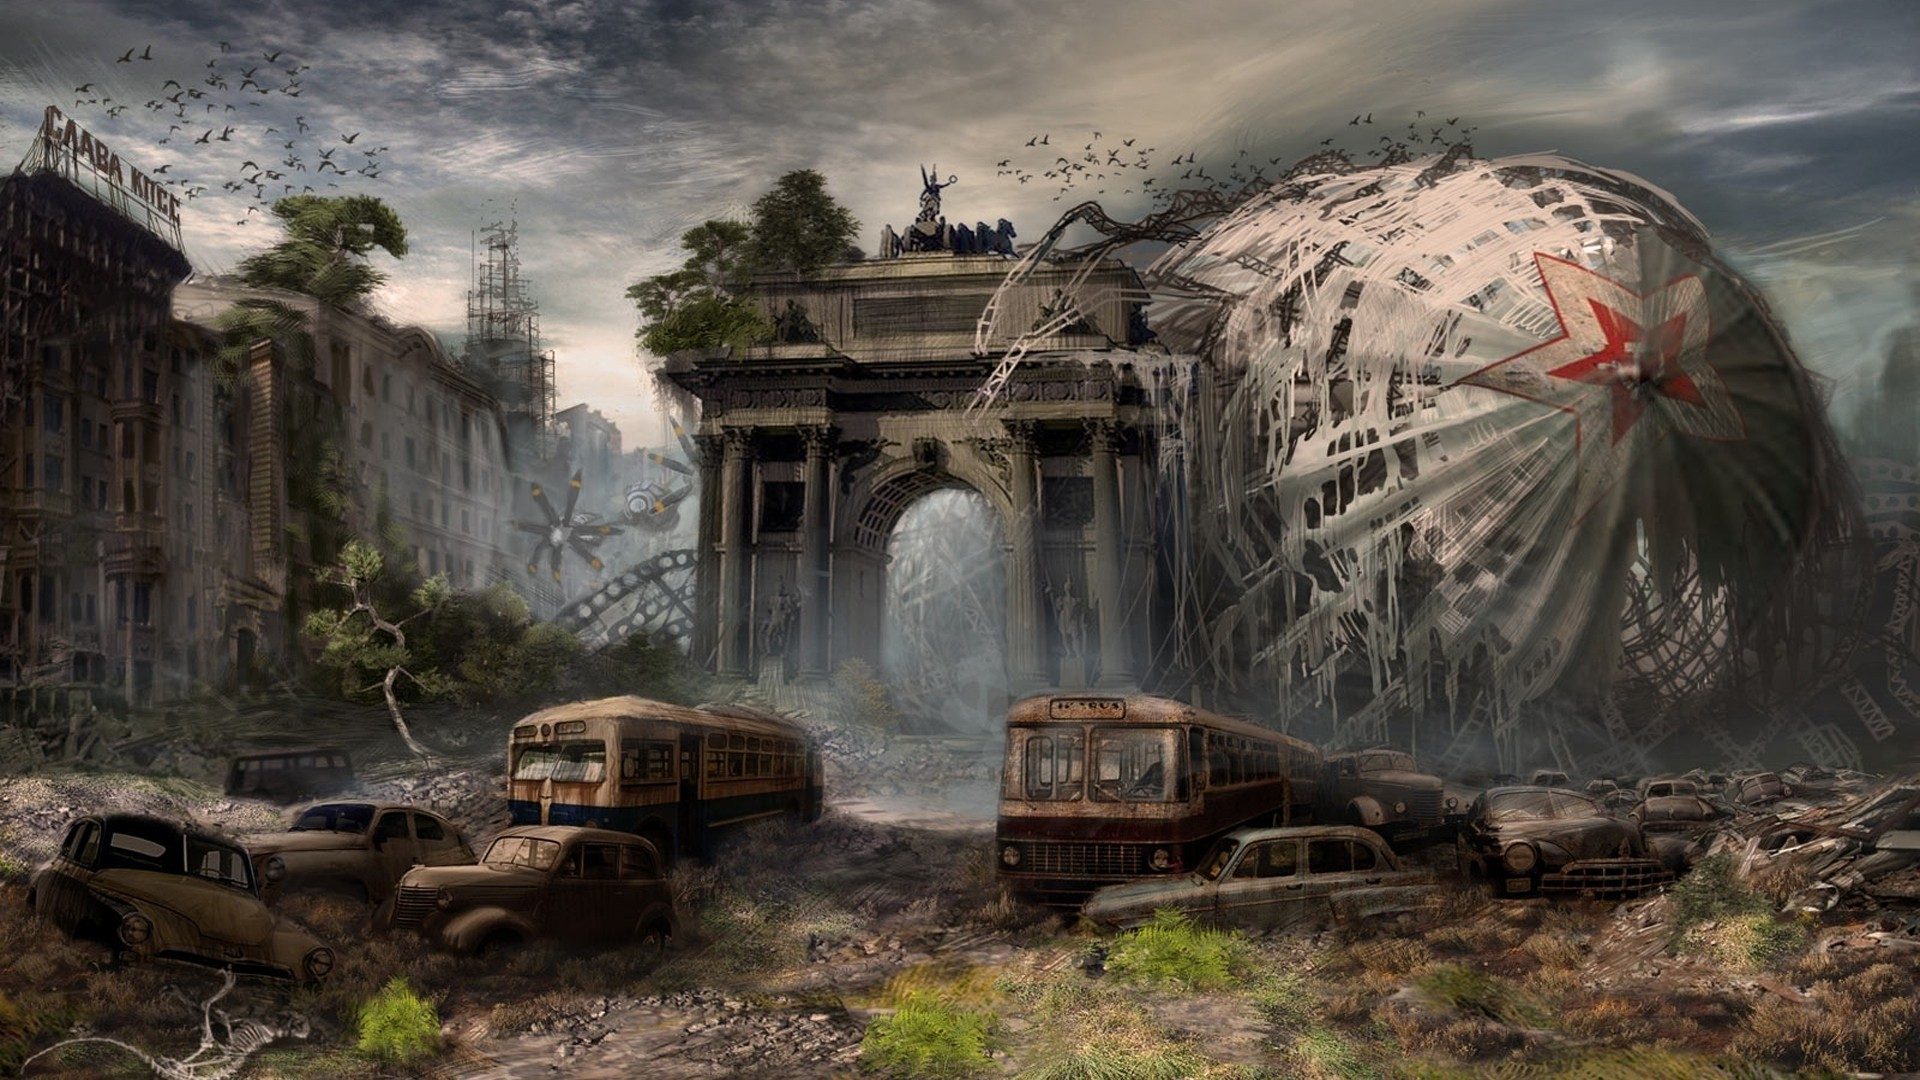 Post apocalyptic computer wallpapers desktop backgrounds 1920x1080